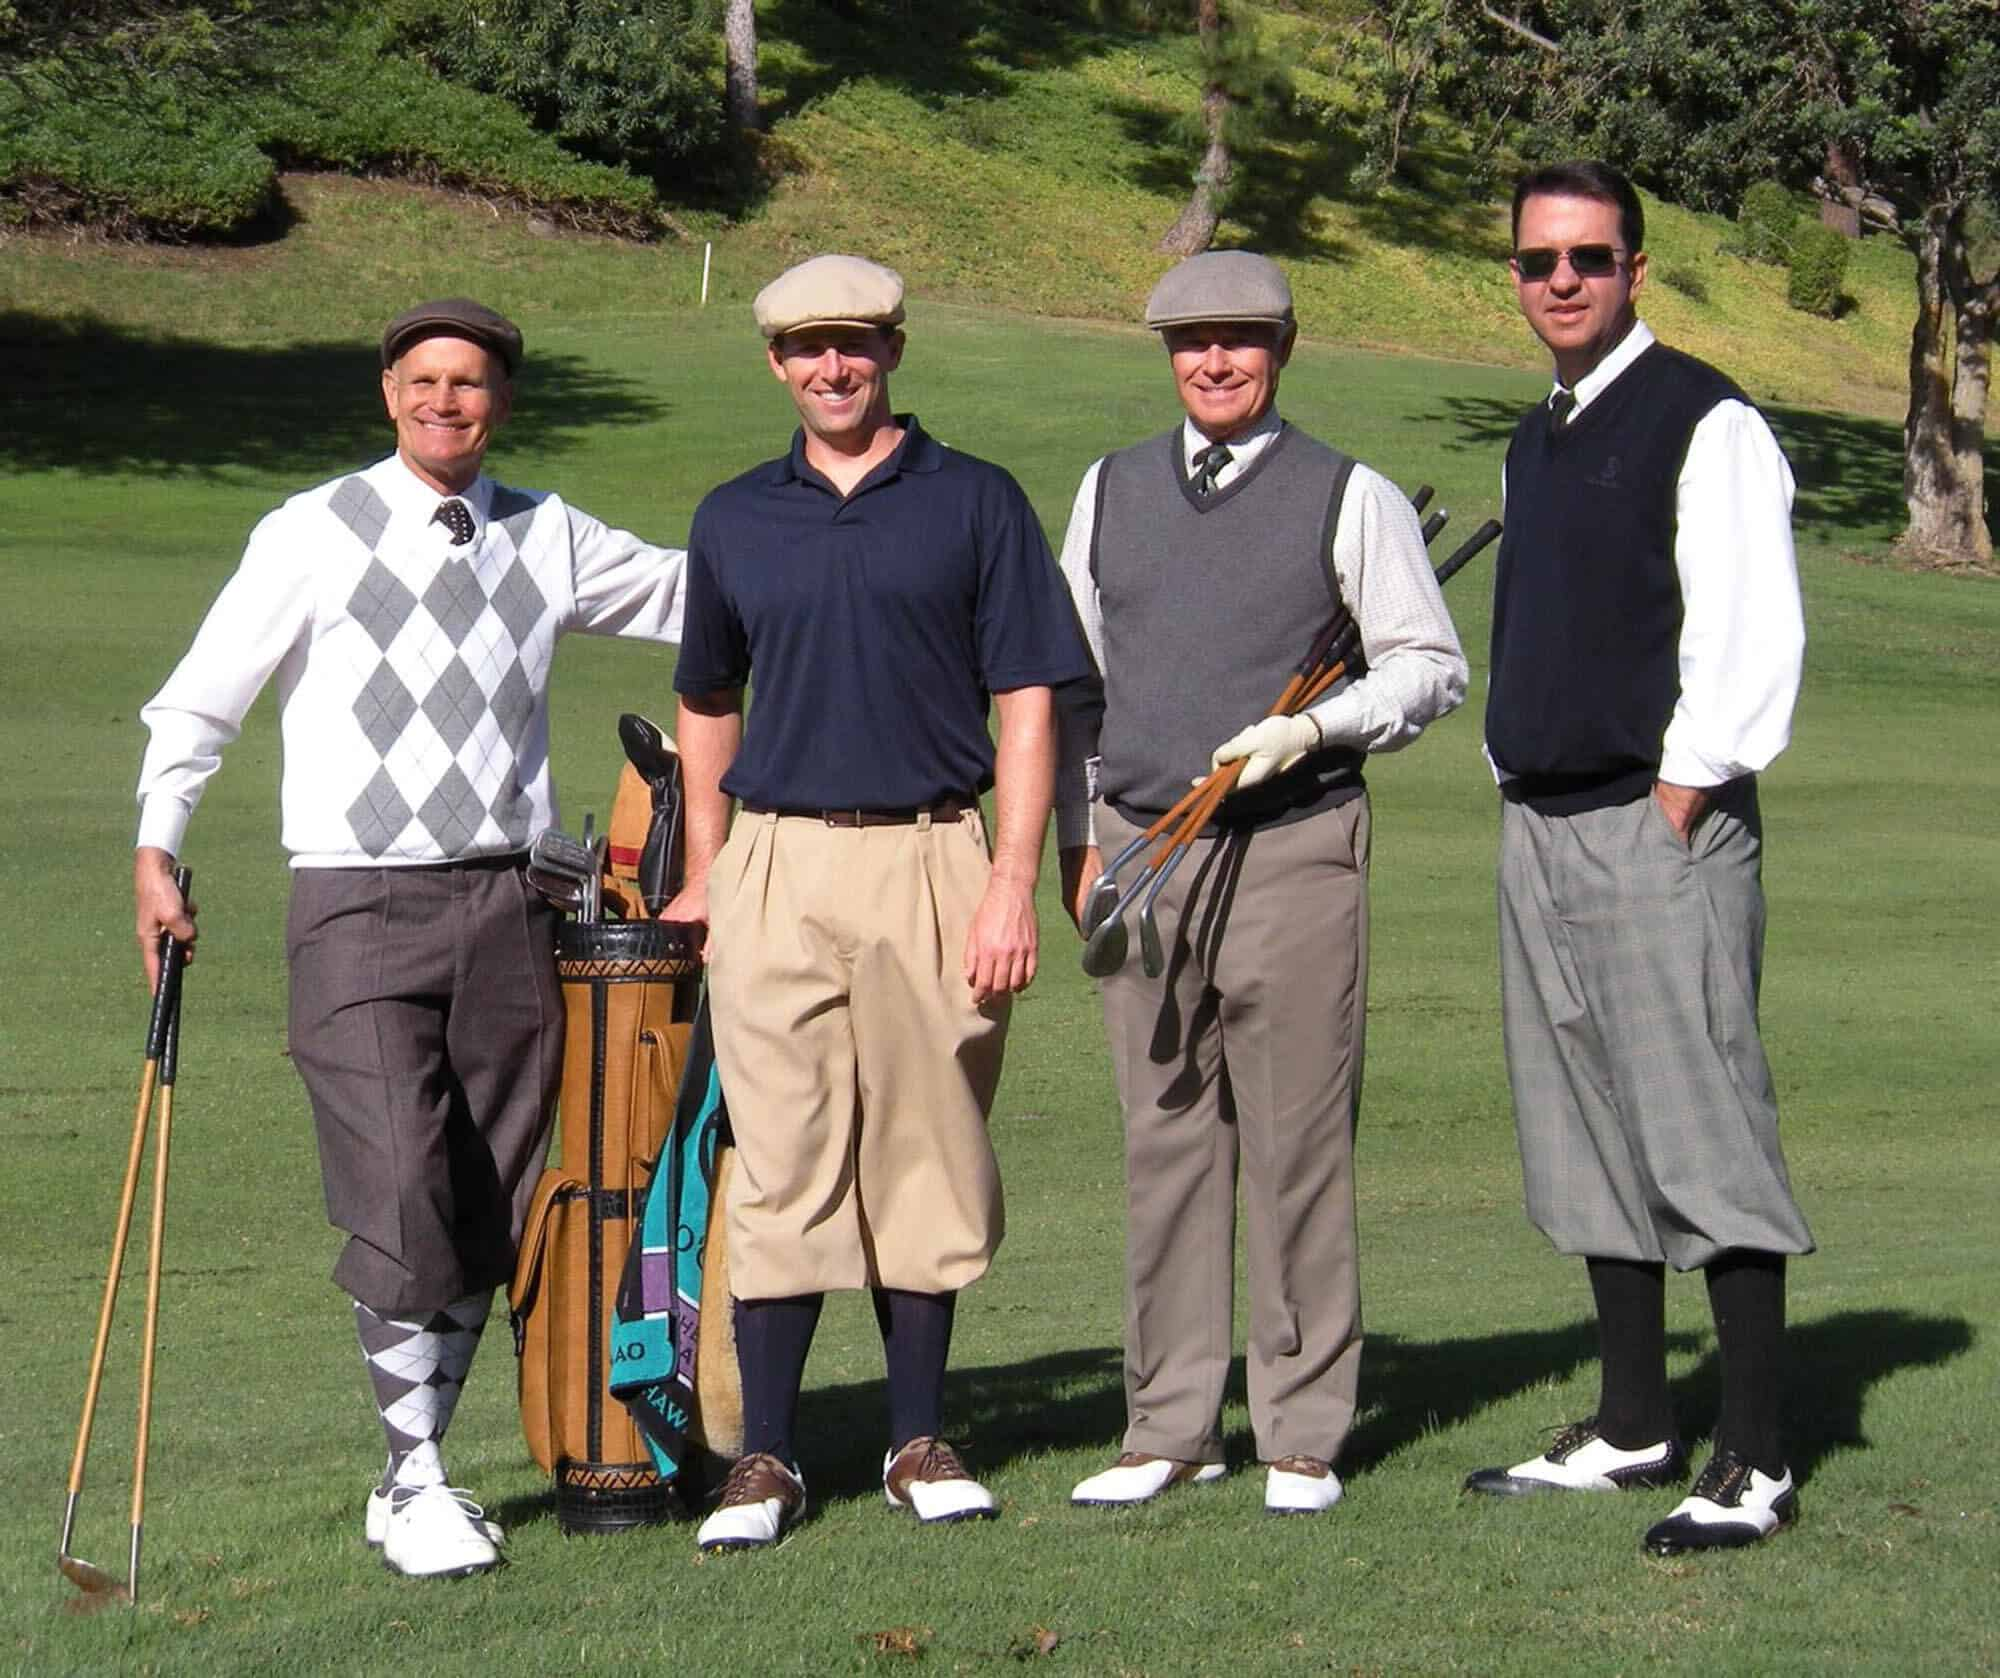 Golf Dress Code Shoes